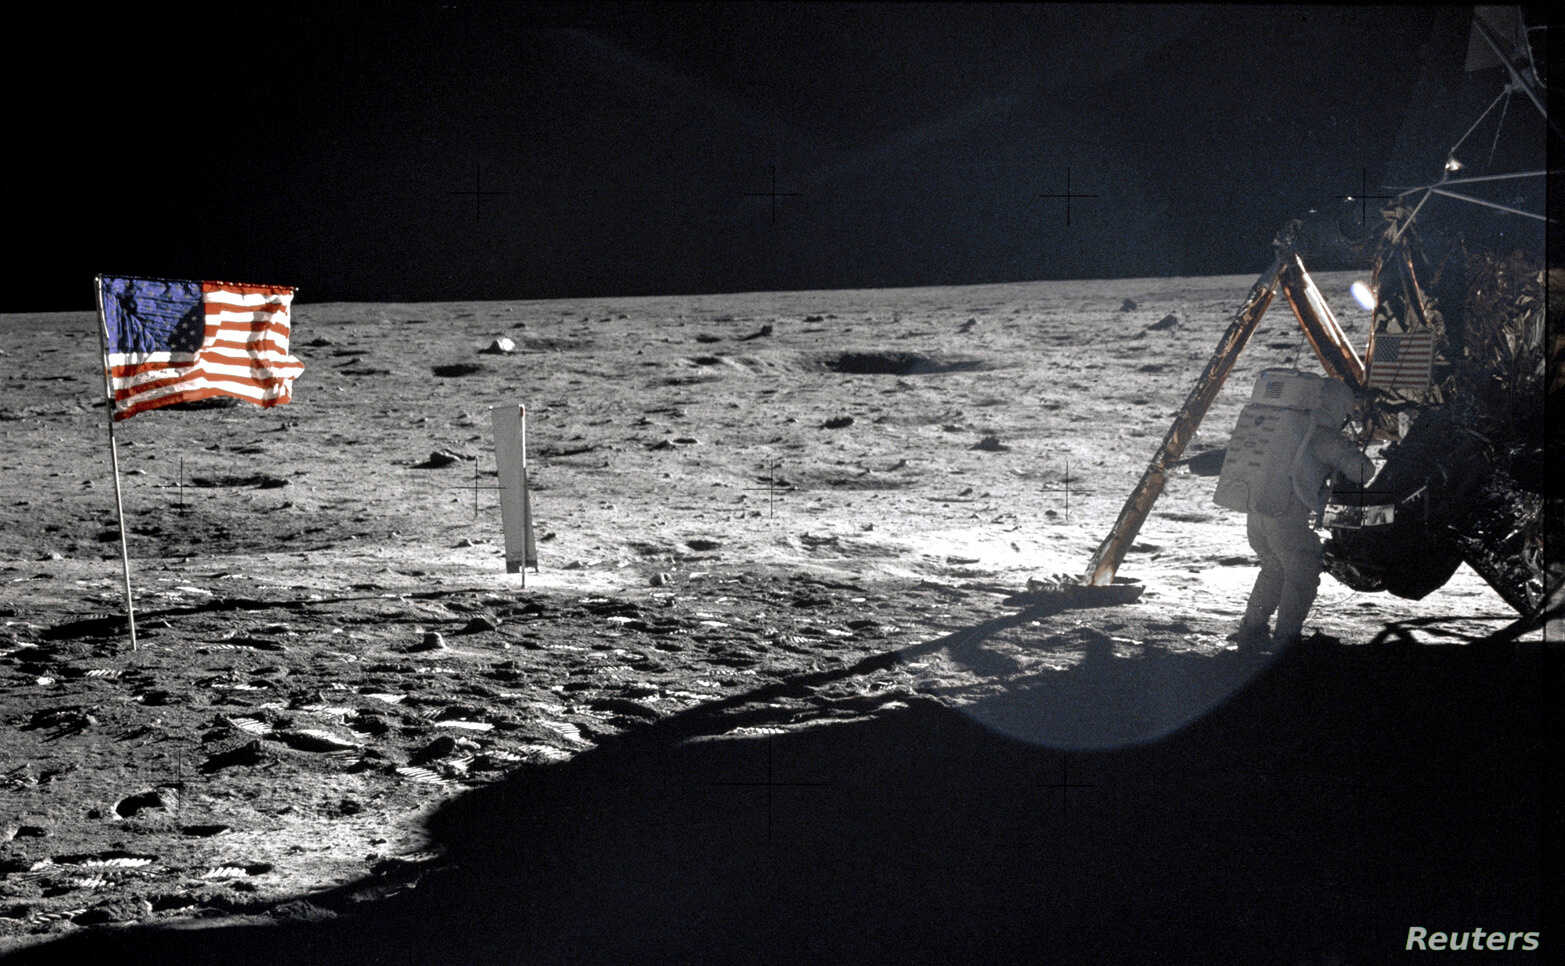 BEING ON THE MOON